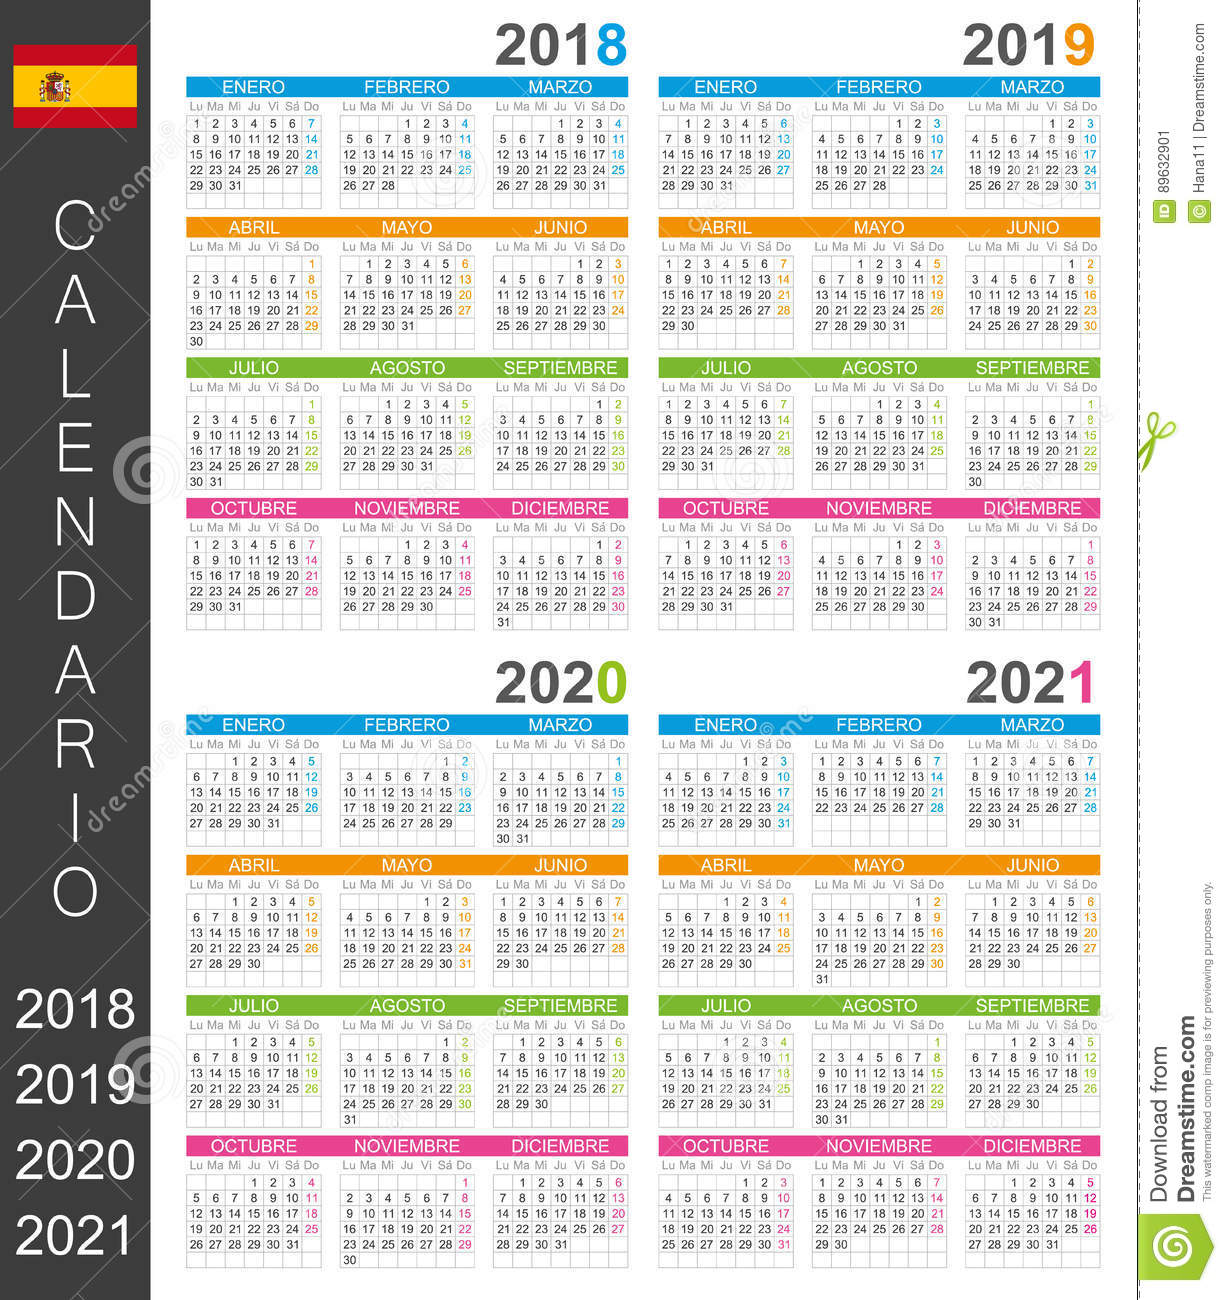 Calendrier 2018_2021 Calendrier 2018 2021 illustration stock. Illustration du 2021